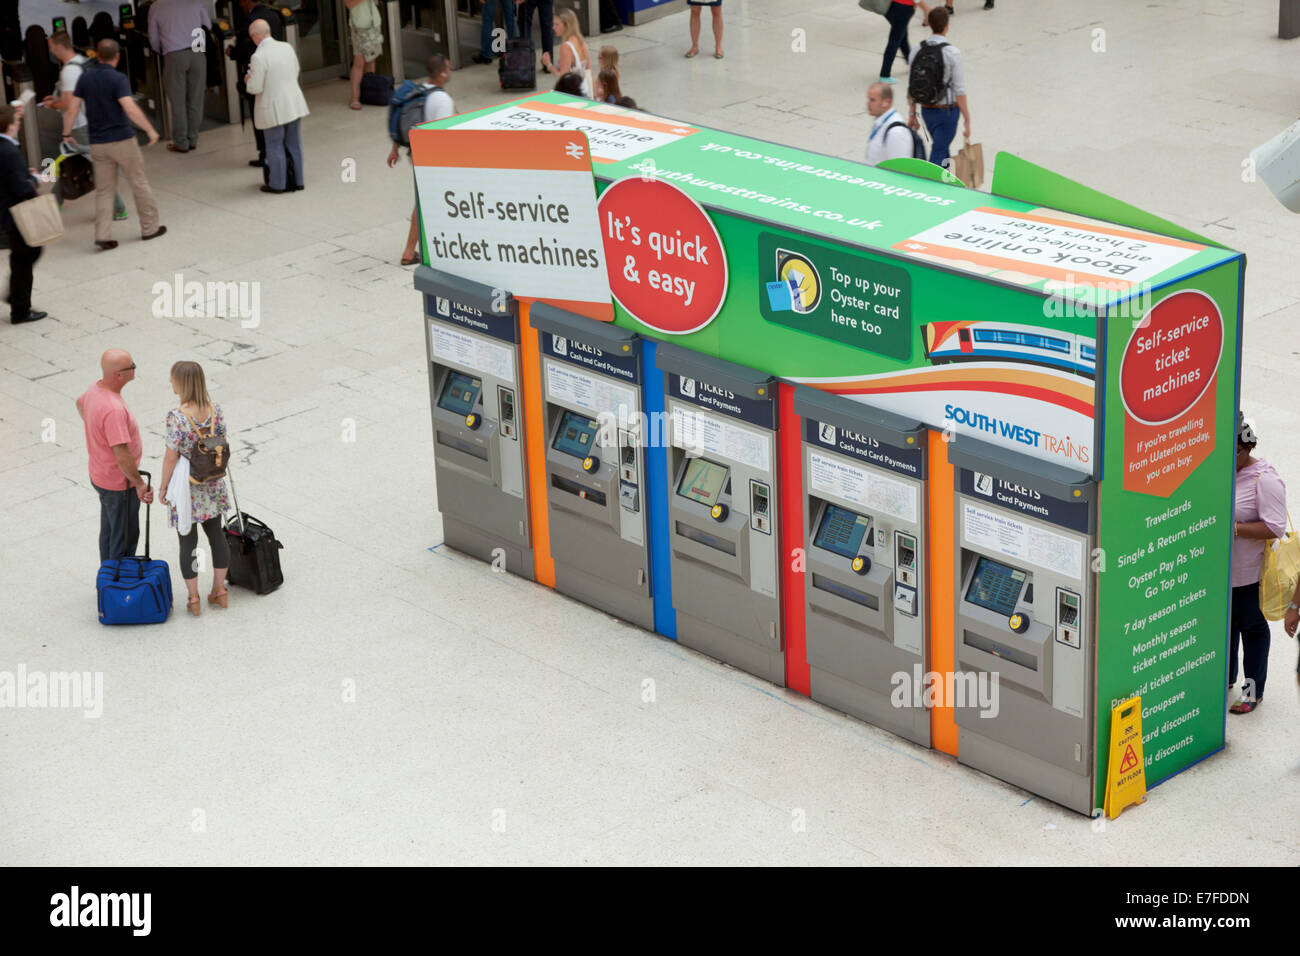 Self service ticket machine at Waterloo Station - Stock Image